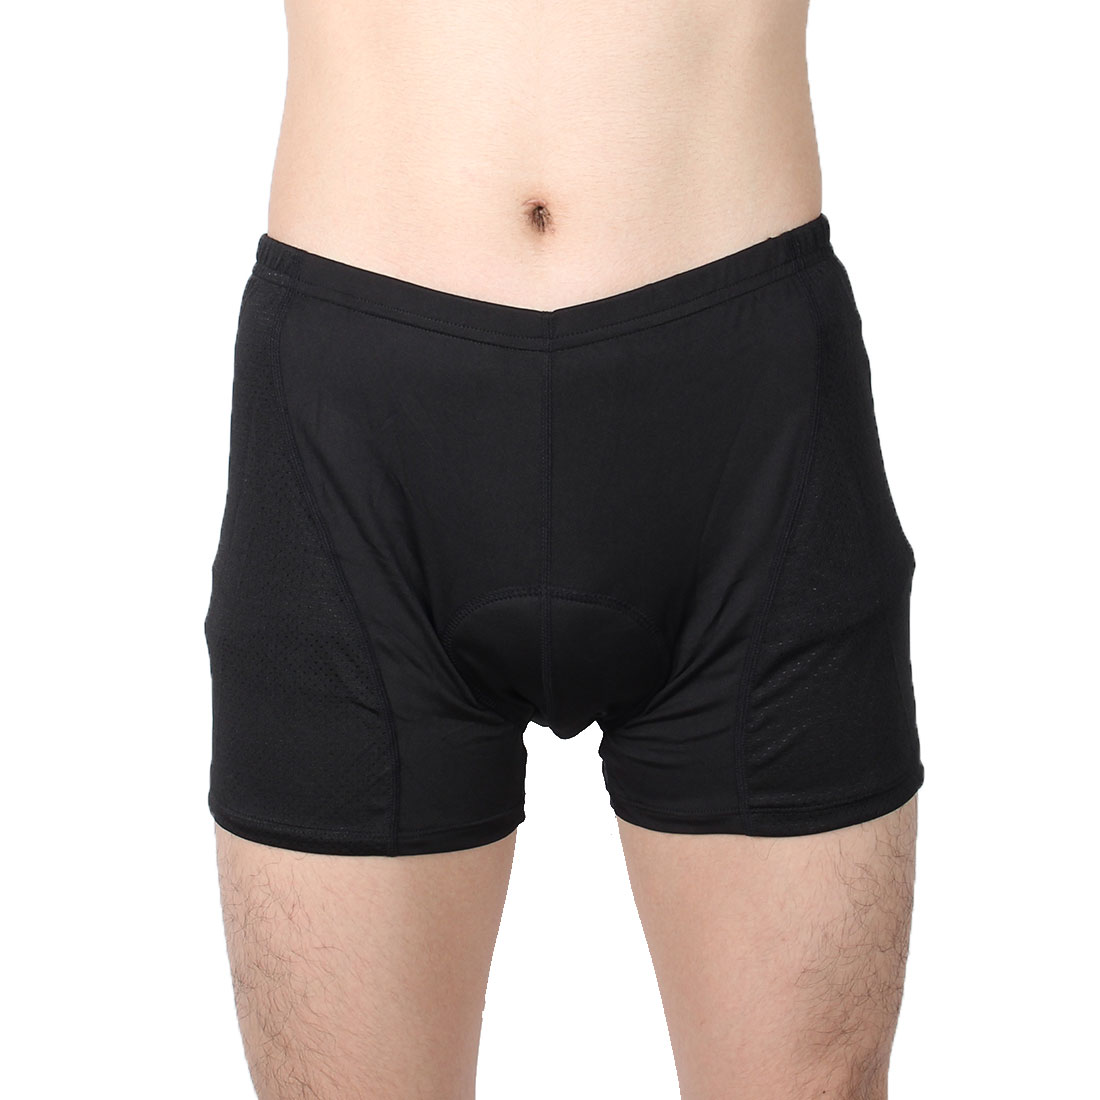 Men Polyester 3D Padded Outdoor Riding Bicycle Biking Underpants Cycling Shorts Black M